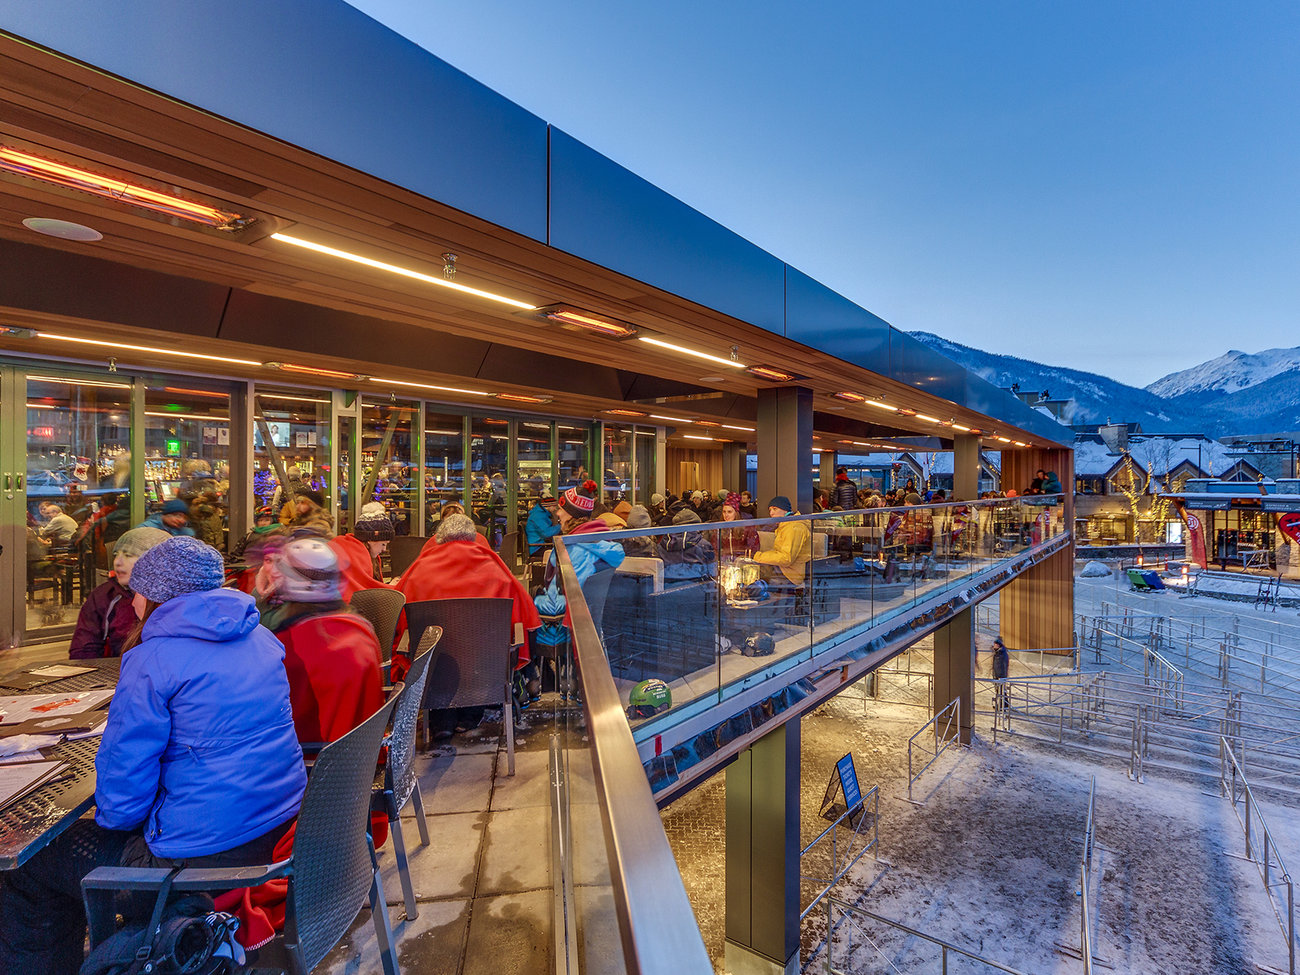 Garibaldi Lift Company Bar in Whistler